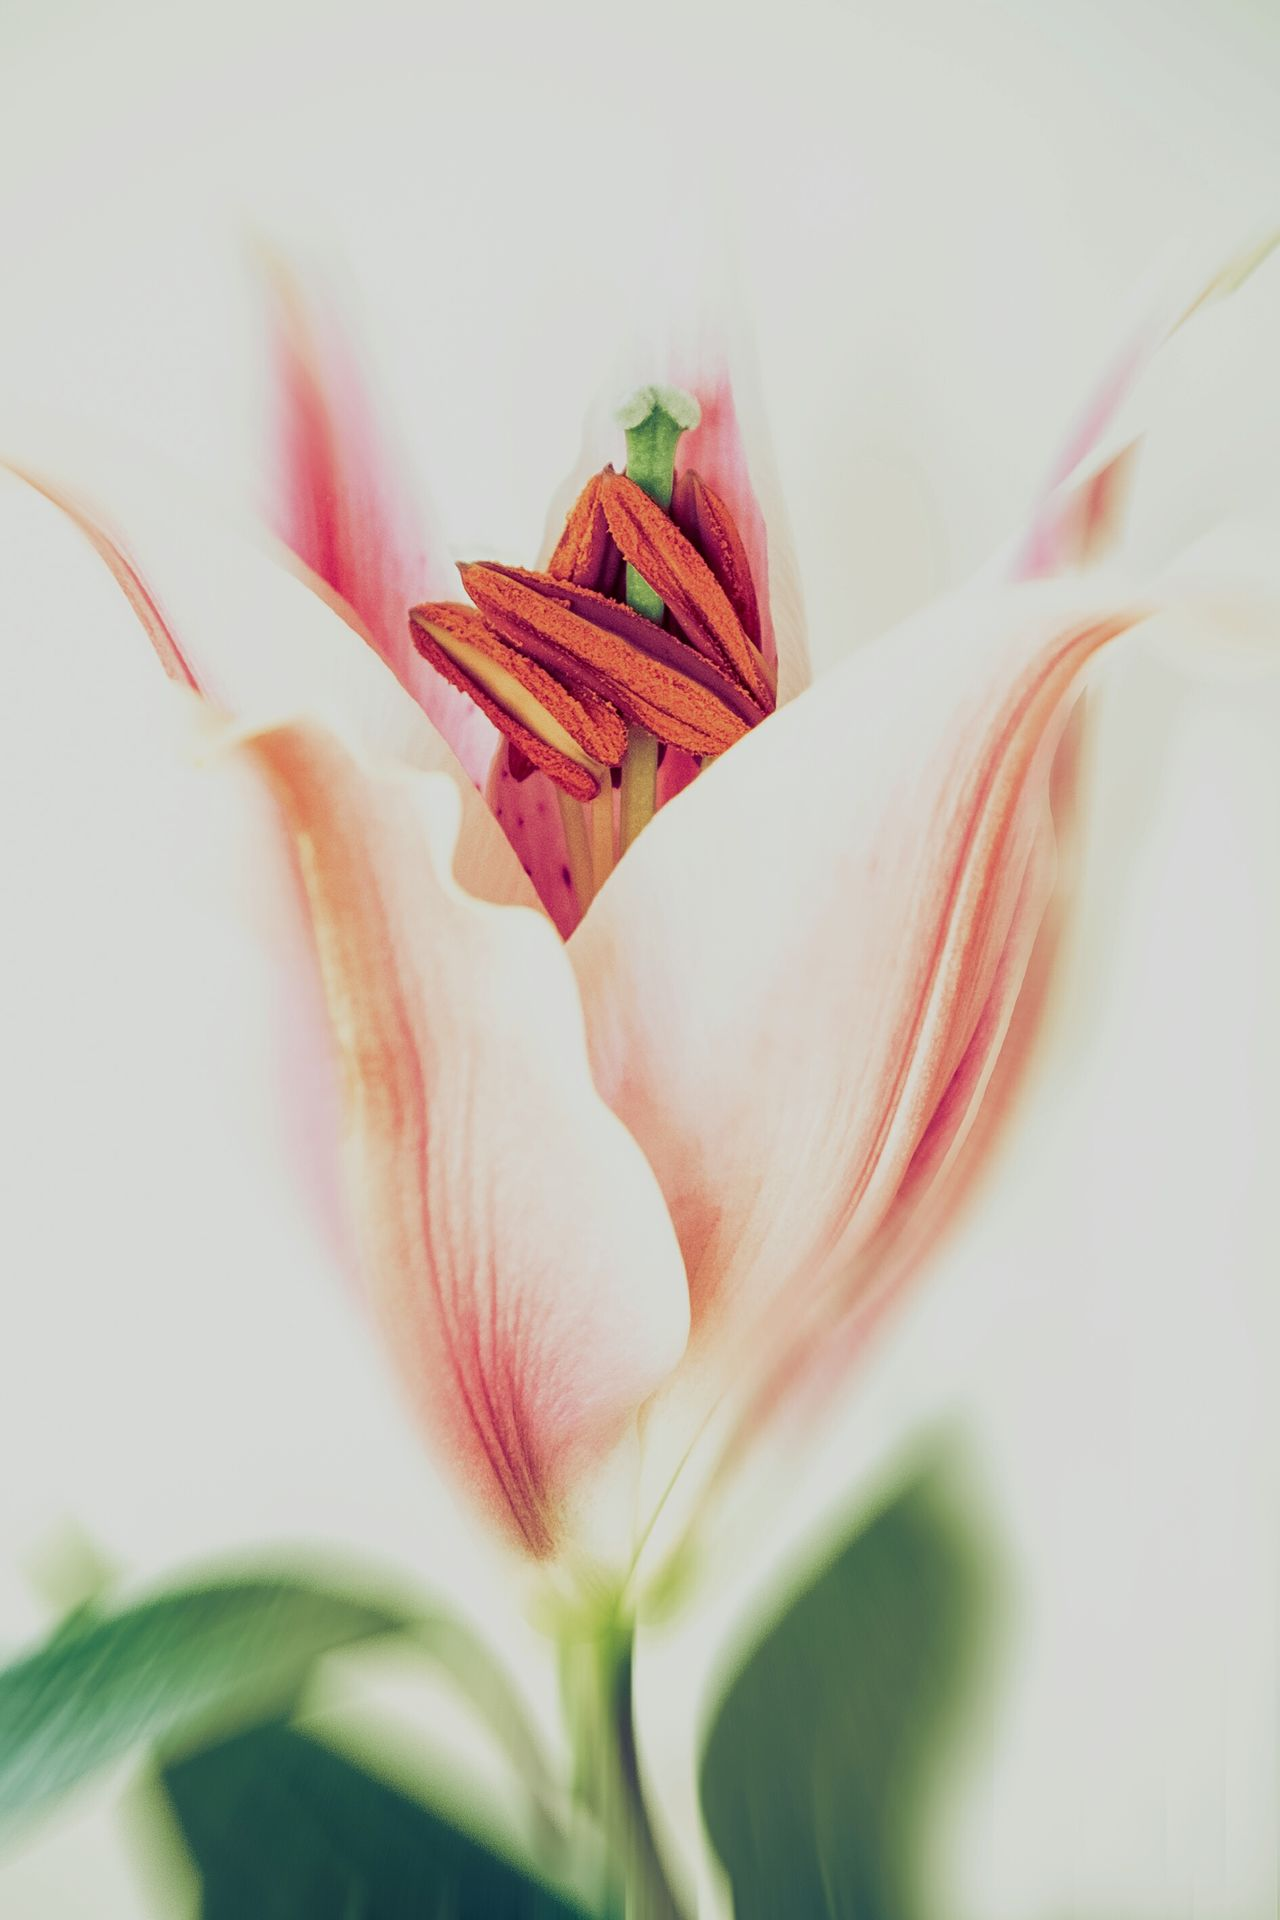 Lily2 Flower Plant Nature Flower Head Close-up Fragility Growth Petal Beauty In Nature Freshness Day Outdoors No People Fine Art Photography Fine Art Lily Lilies Pink Flower Pink Pink Lily Pink Flowers Pink Flower 🌸